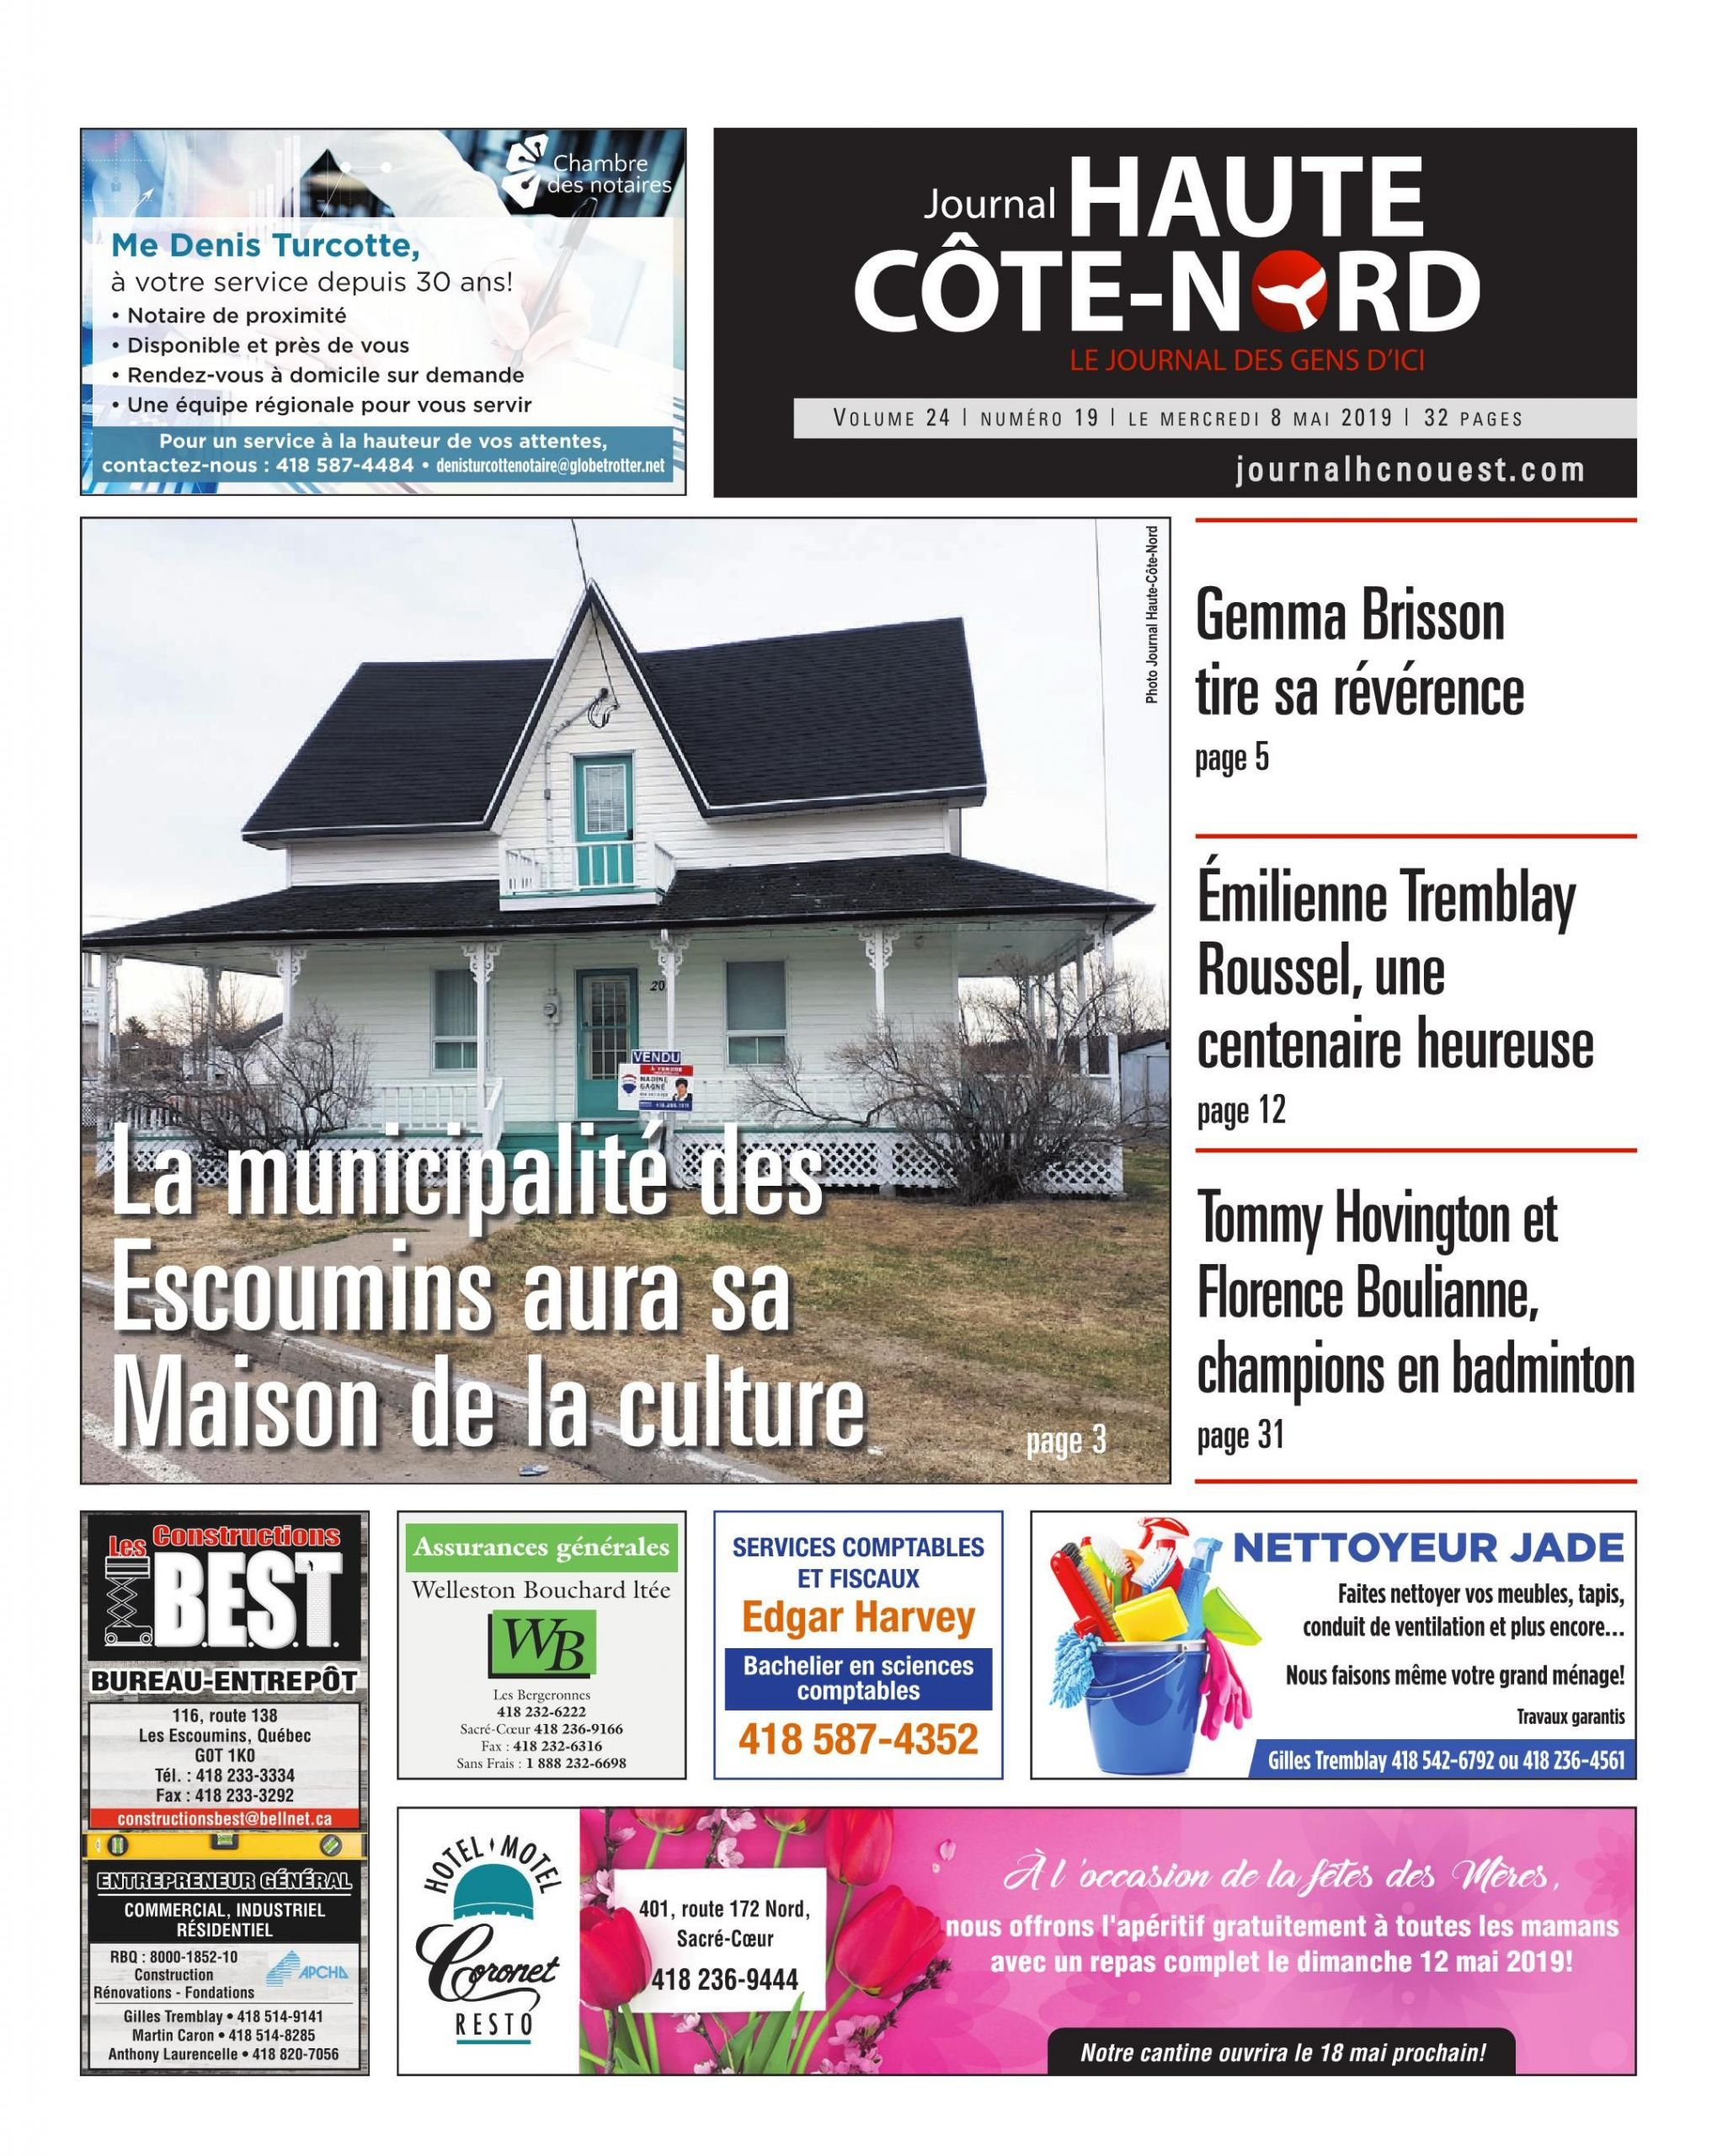 Jardin Paysager Exemple Best Of Le Haute C´te nord 8 Mai 2019 Pages 1 32 Text Version Of 78 Luxe Jardin Paysager Exemple